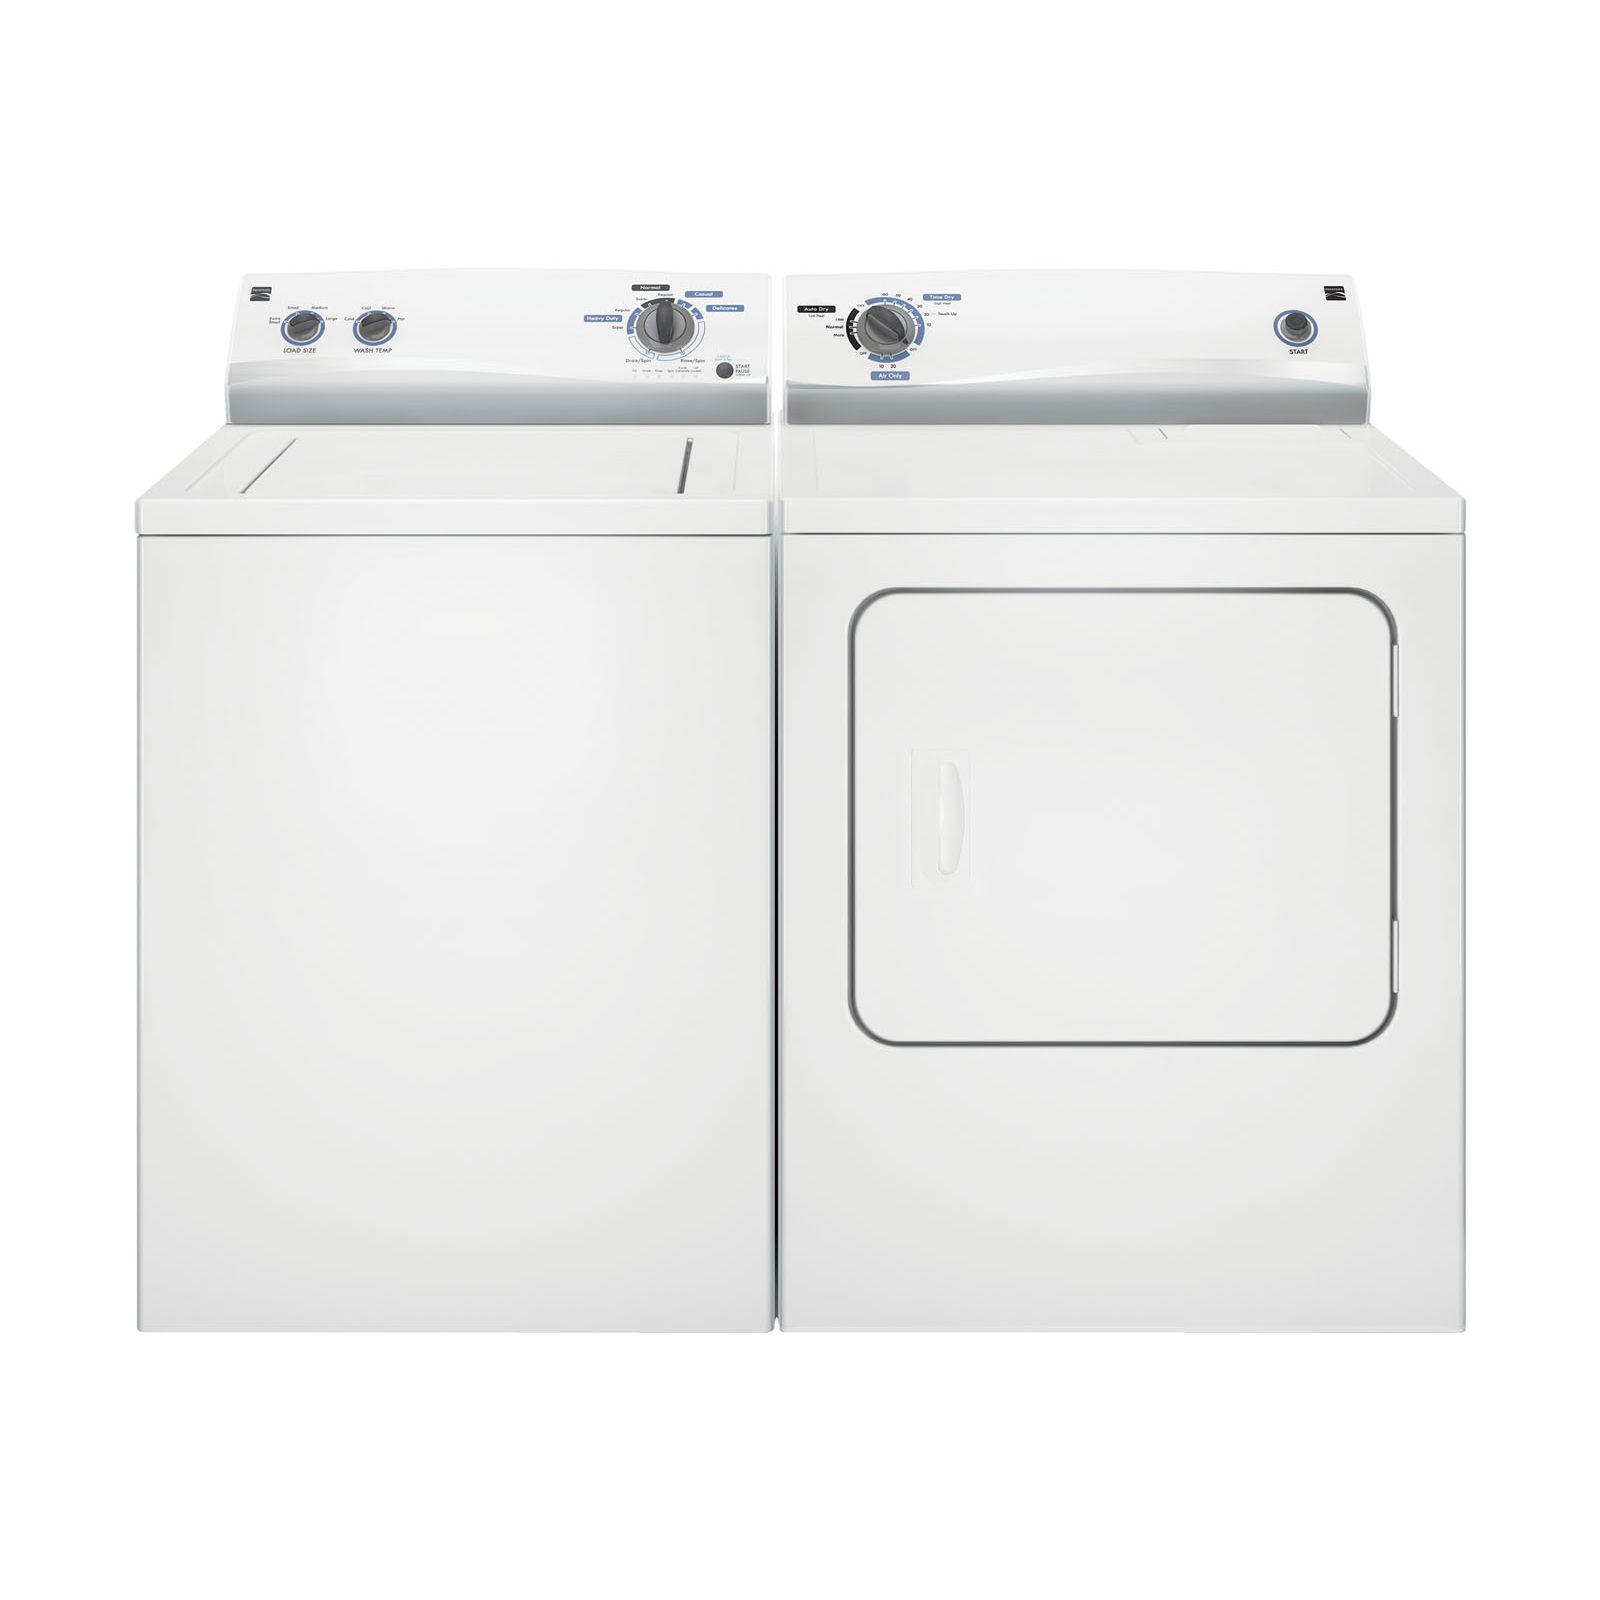 Kenmore 6.0 cu. ft. Electric Dryer -  White